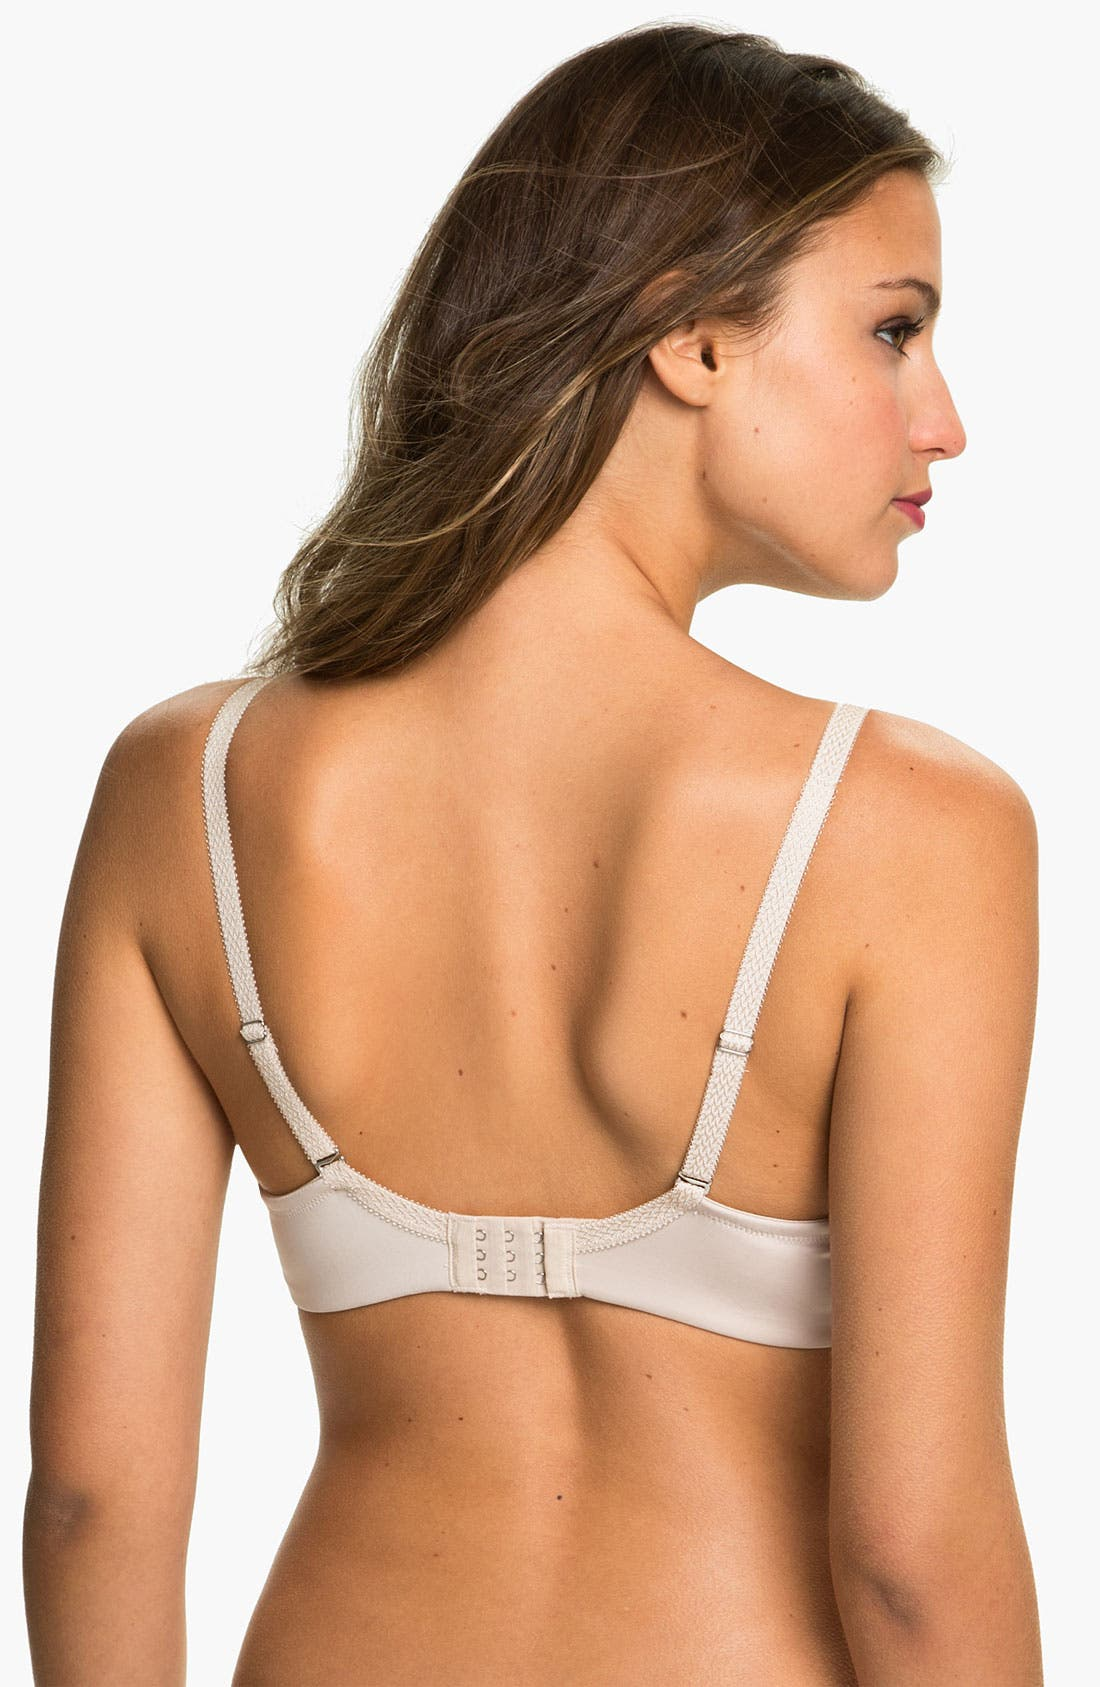 Alternate Image 3  - Cake 'Toffee' Convertible Contour Flexi-Wire Nursing Bra (DD-Cup & Up)